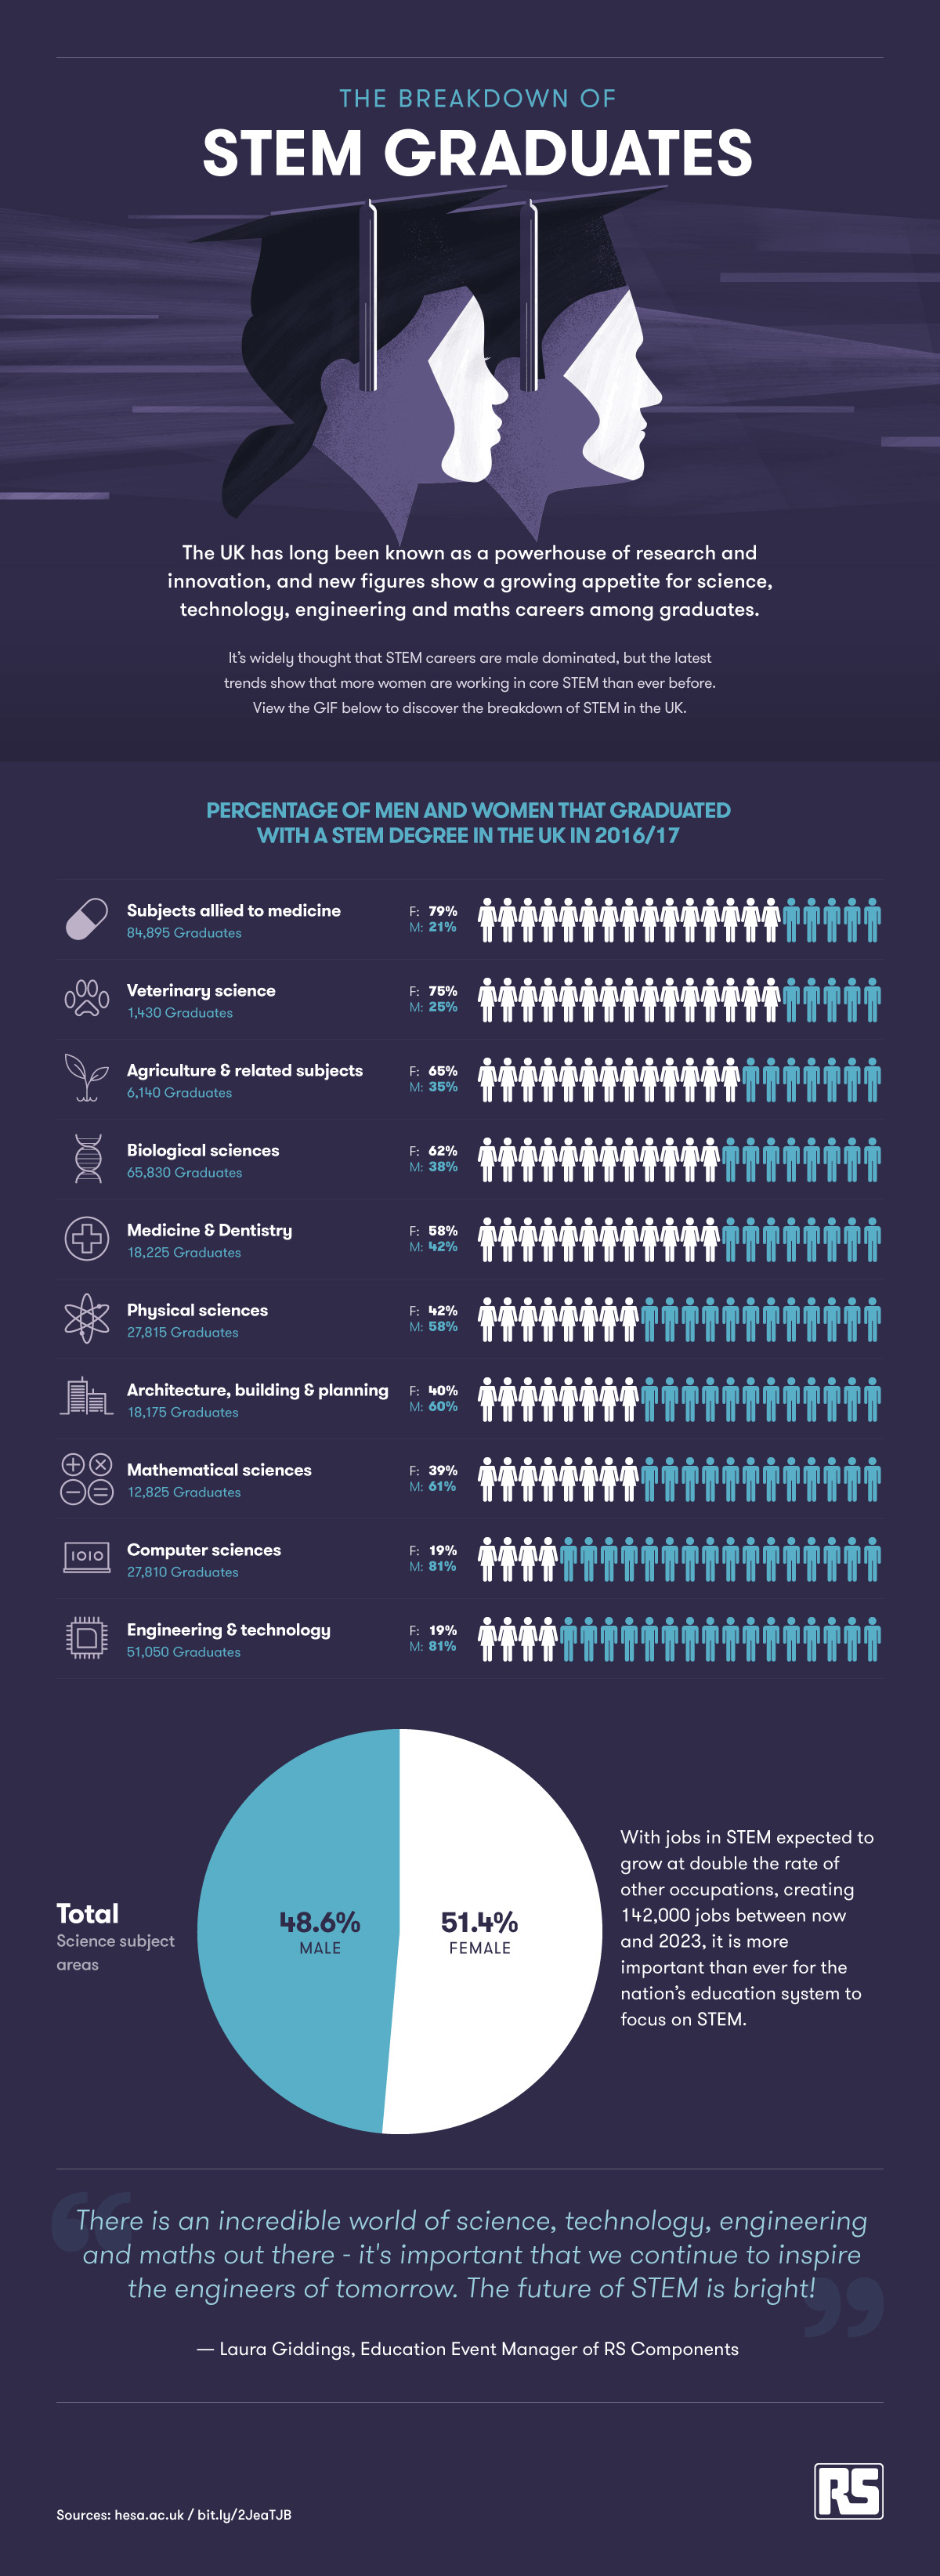 STEM Graduates Breakdown [Infographic]